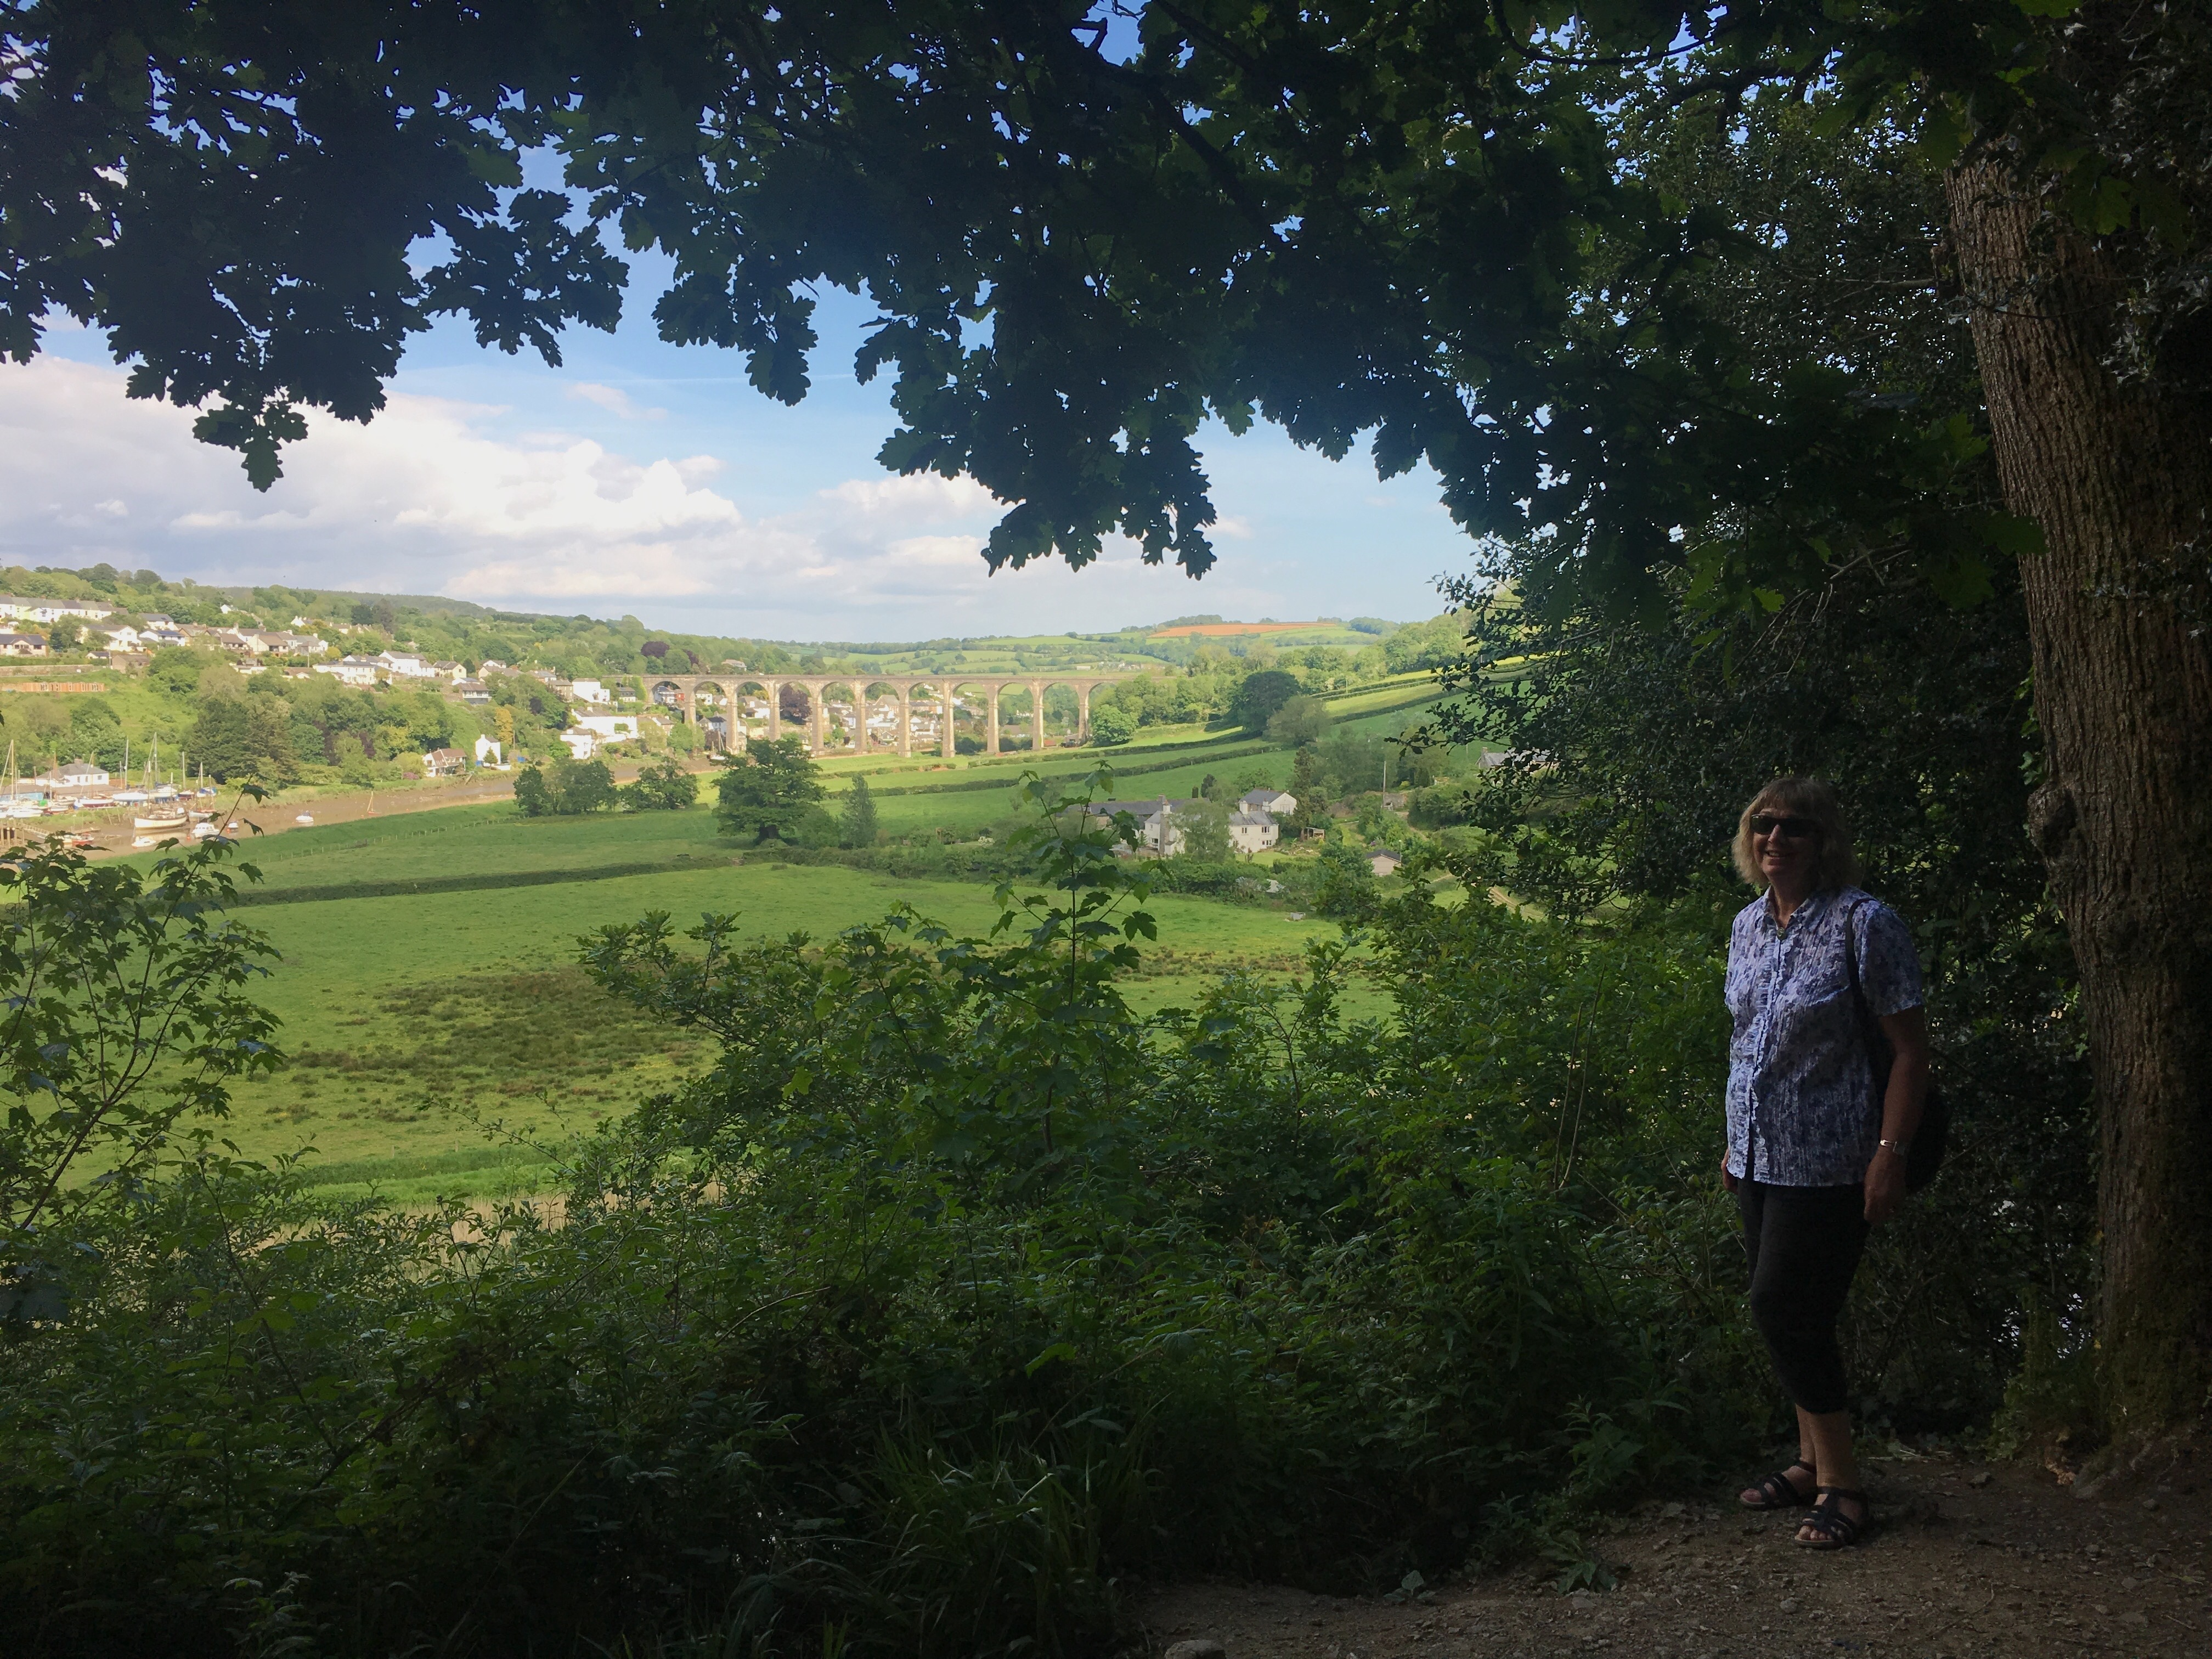 A tale from the Tamar Valley